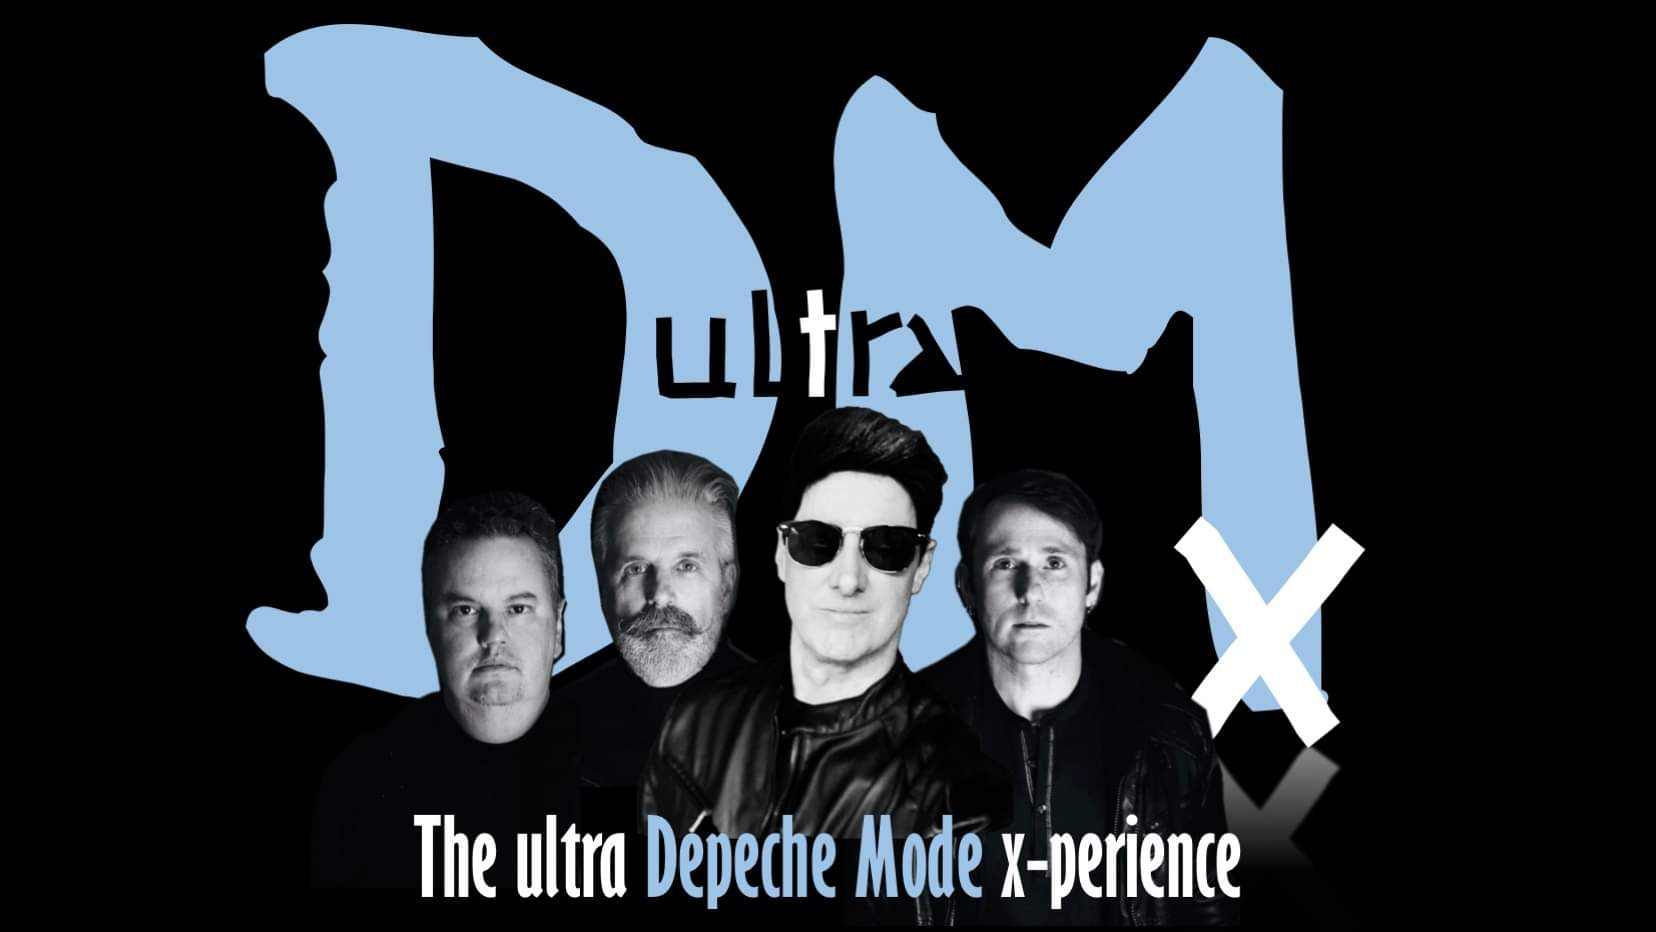 Promo image of Depeche Mode Tribute: UltraDMx on Skydeck